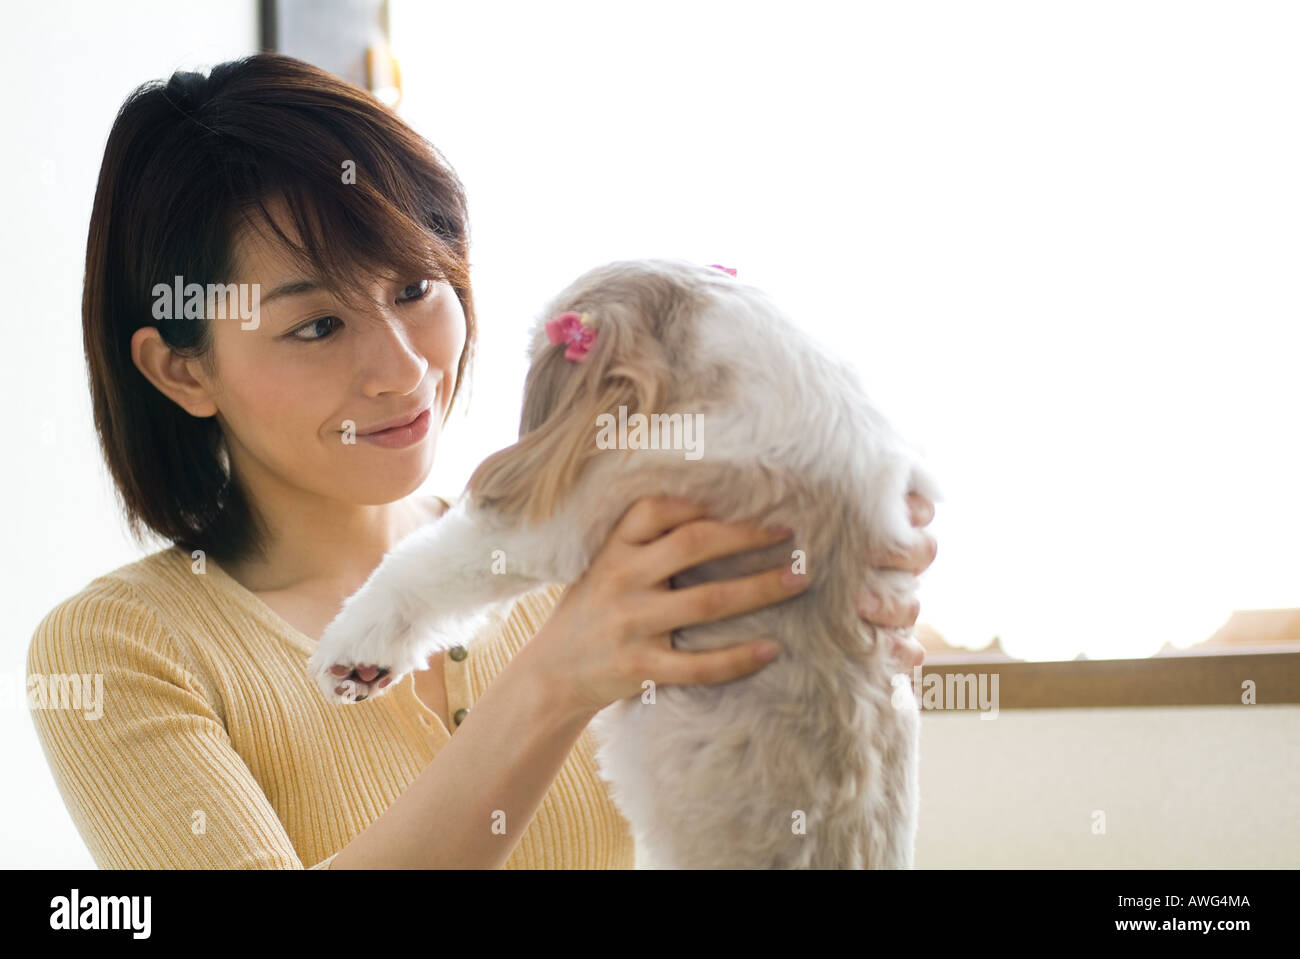 A mid adult woman lifting a dog - Stock Image